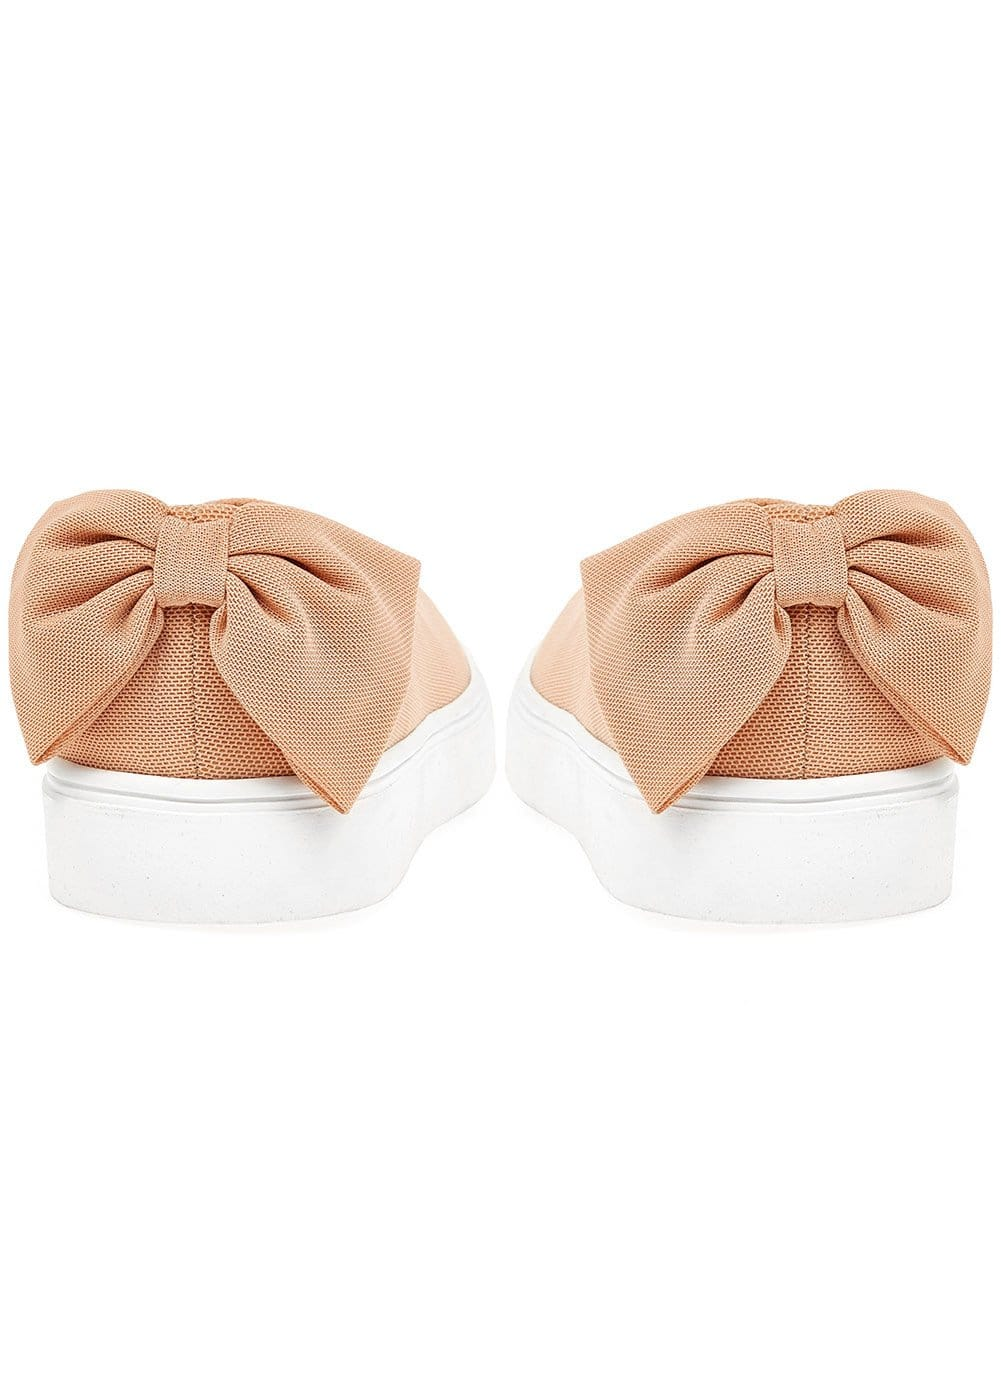 Girls Plimsoll with Bow - Nude - Detail